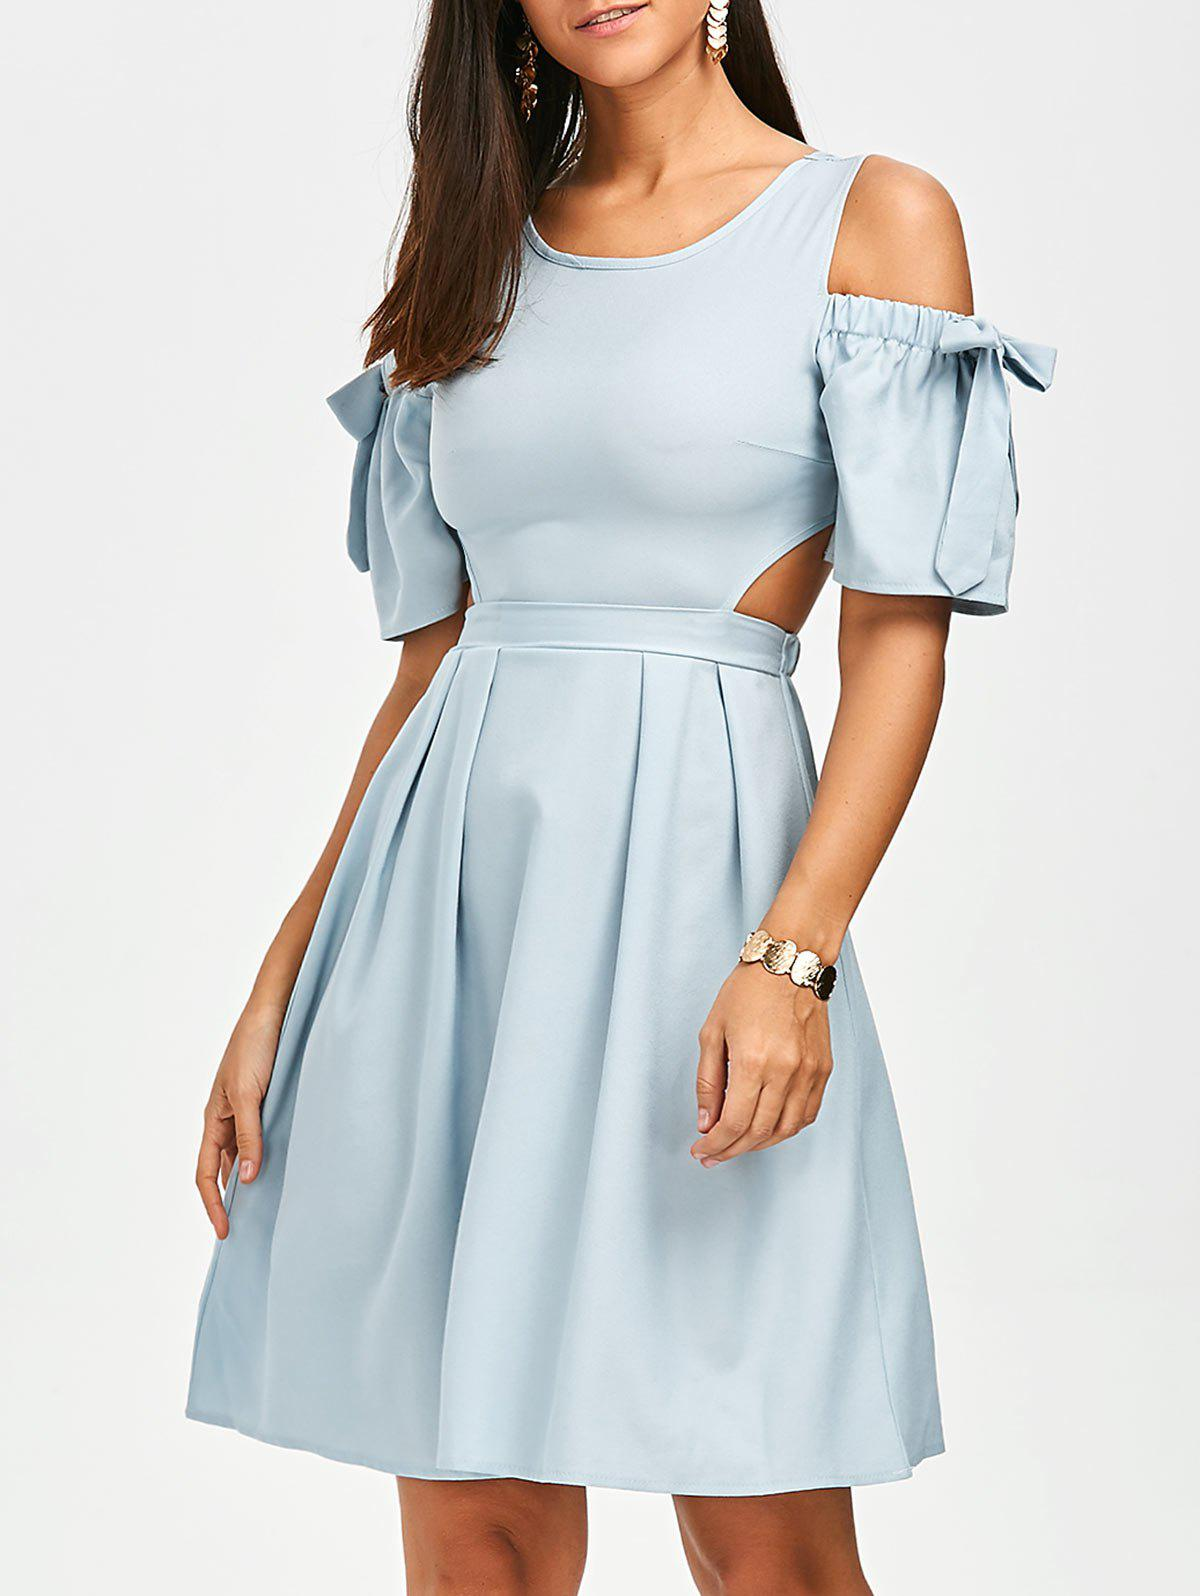 Bowknot Cold Shoulder Cut Out Dress - Bleu L